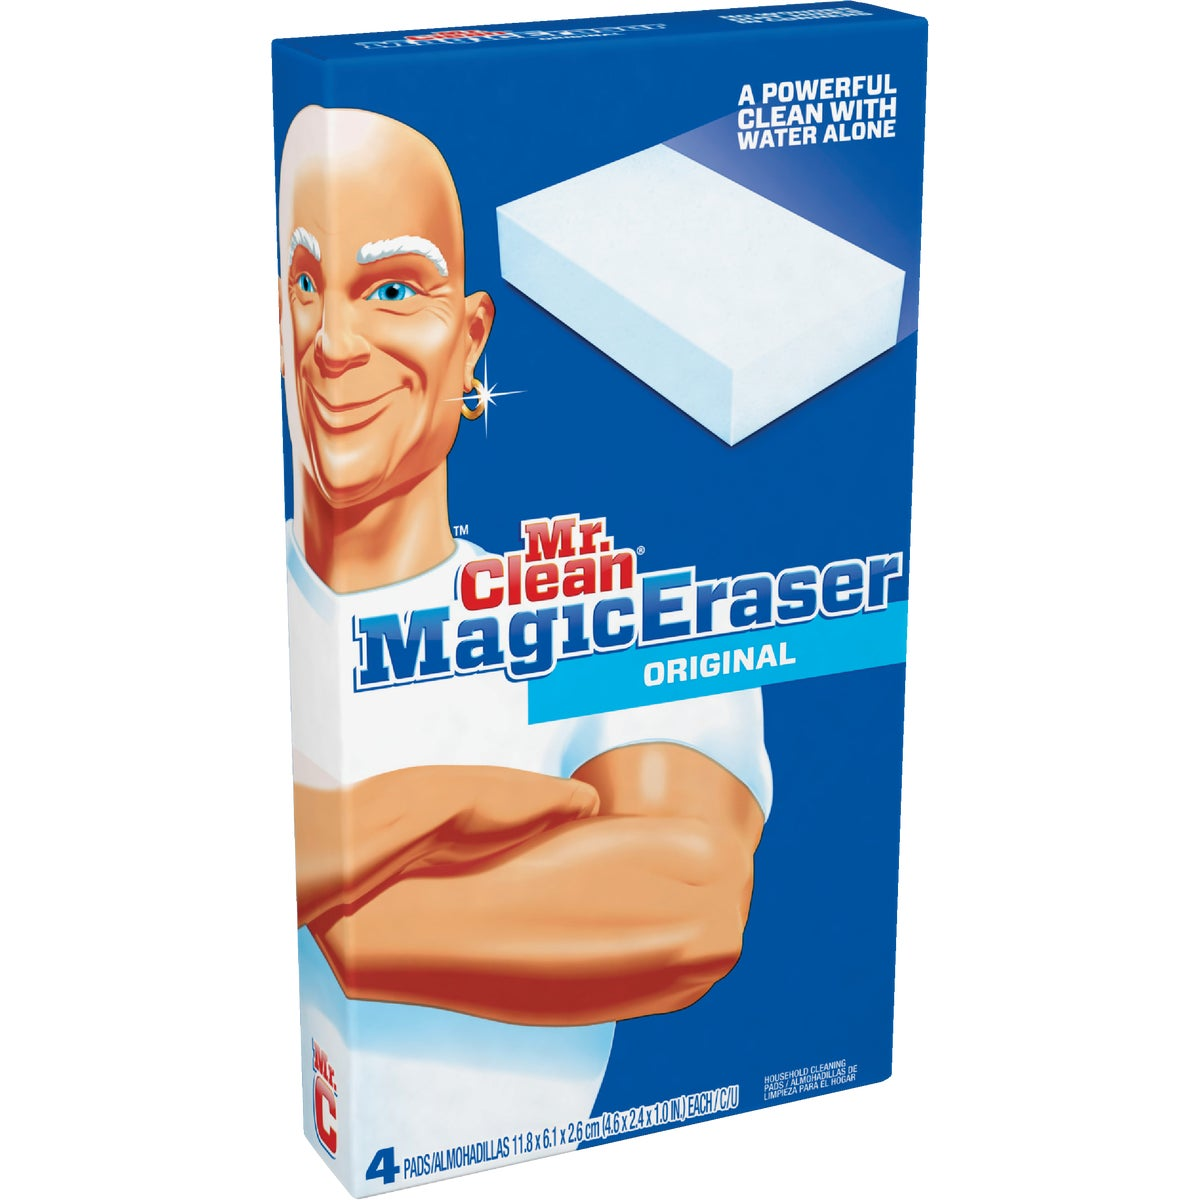 Mr. Clean Magic Eraser Cleansing Pad